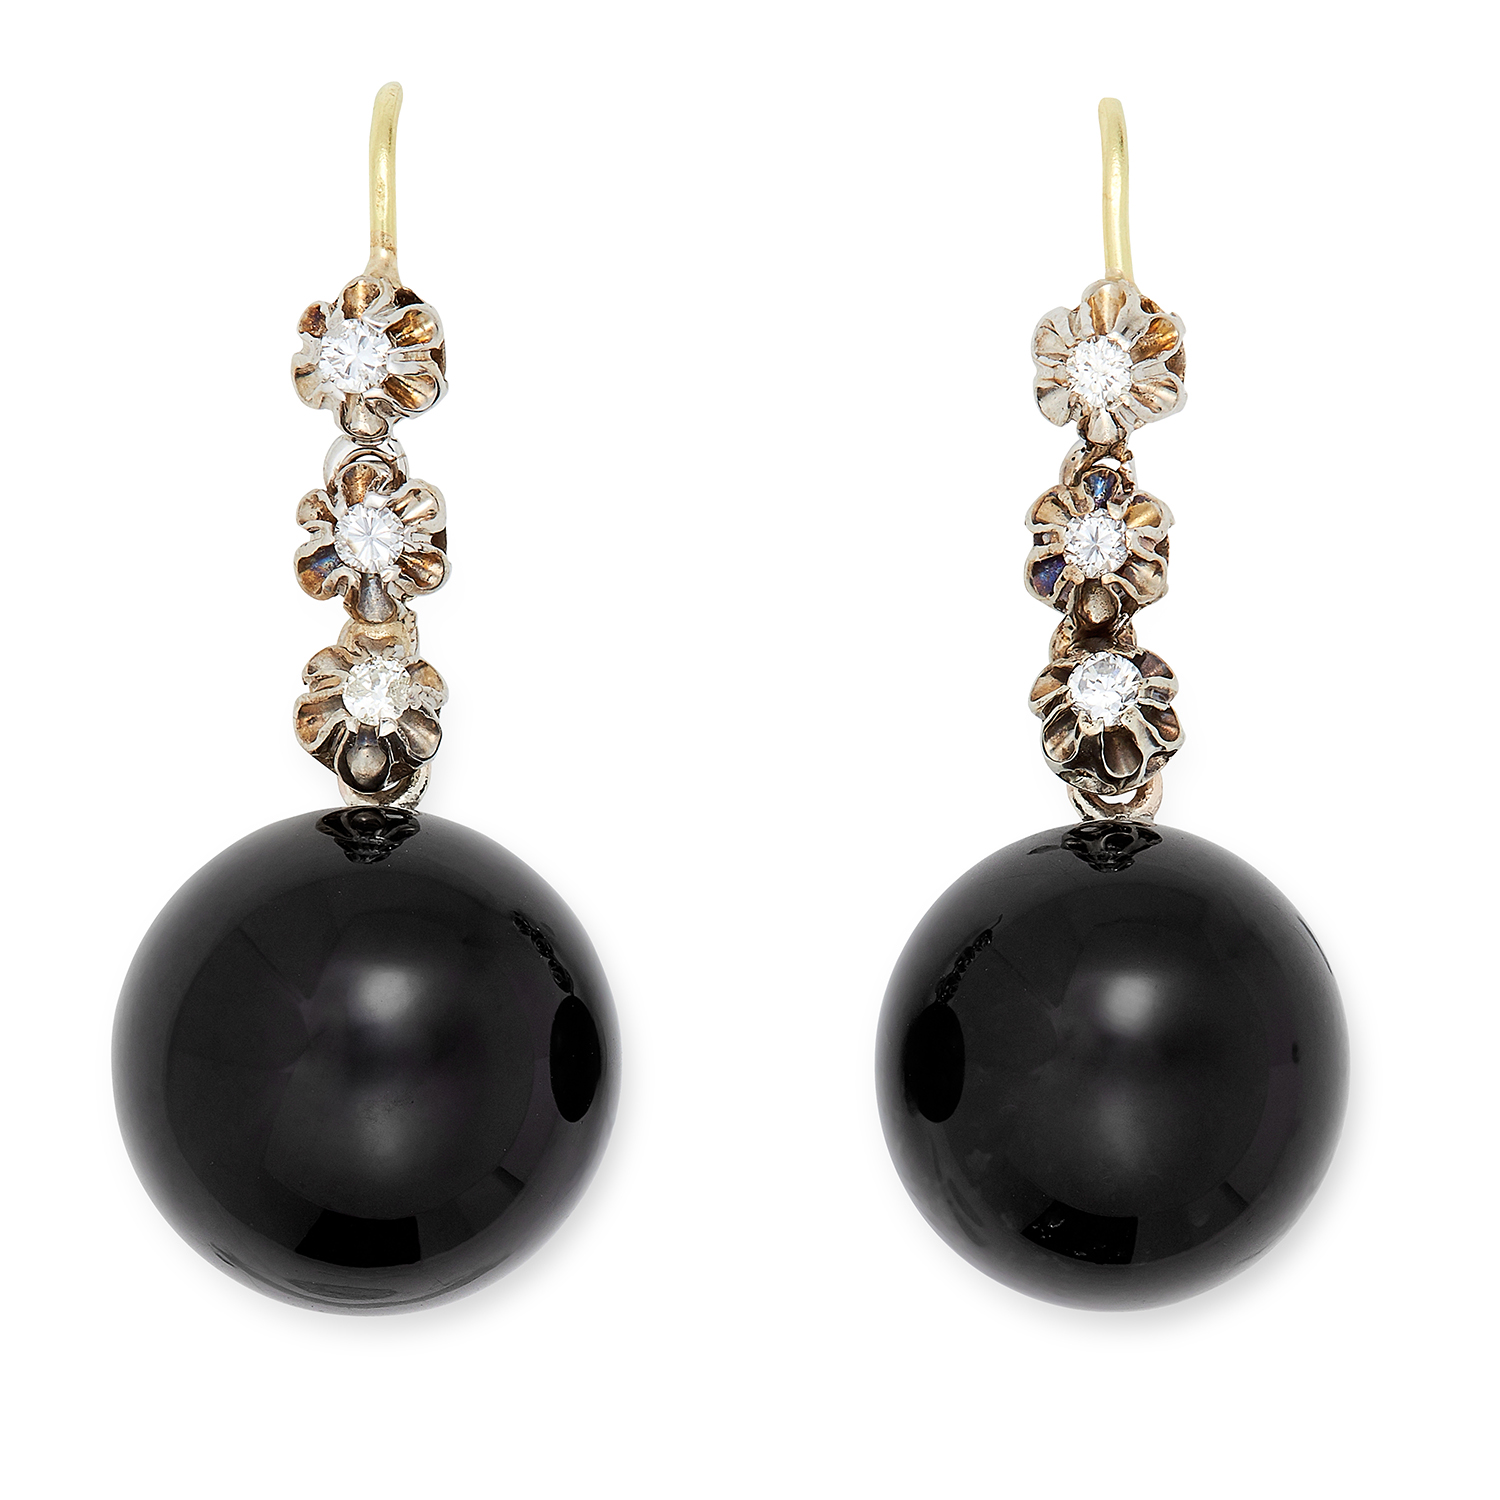 Los 22 - ONYX AND DIAMOND EARRINGS each set with three round cut diamonds, suspending a polished onyx bead,